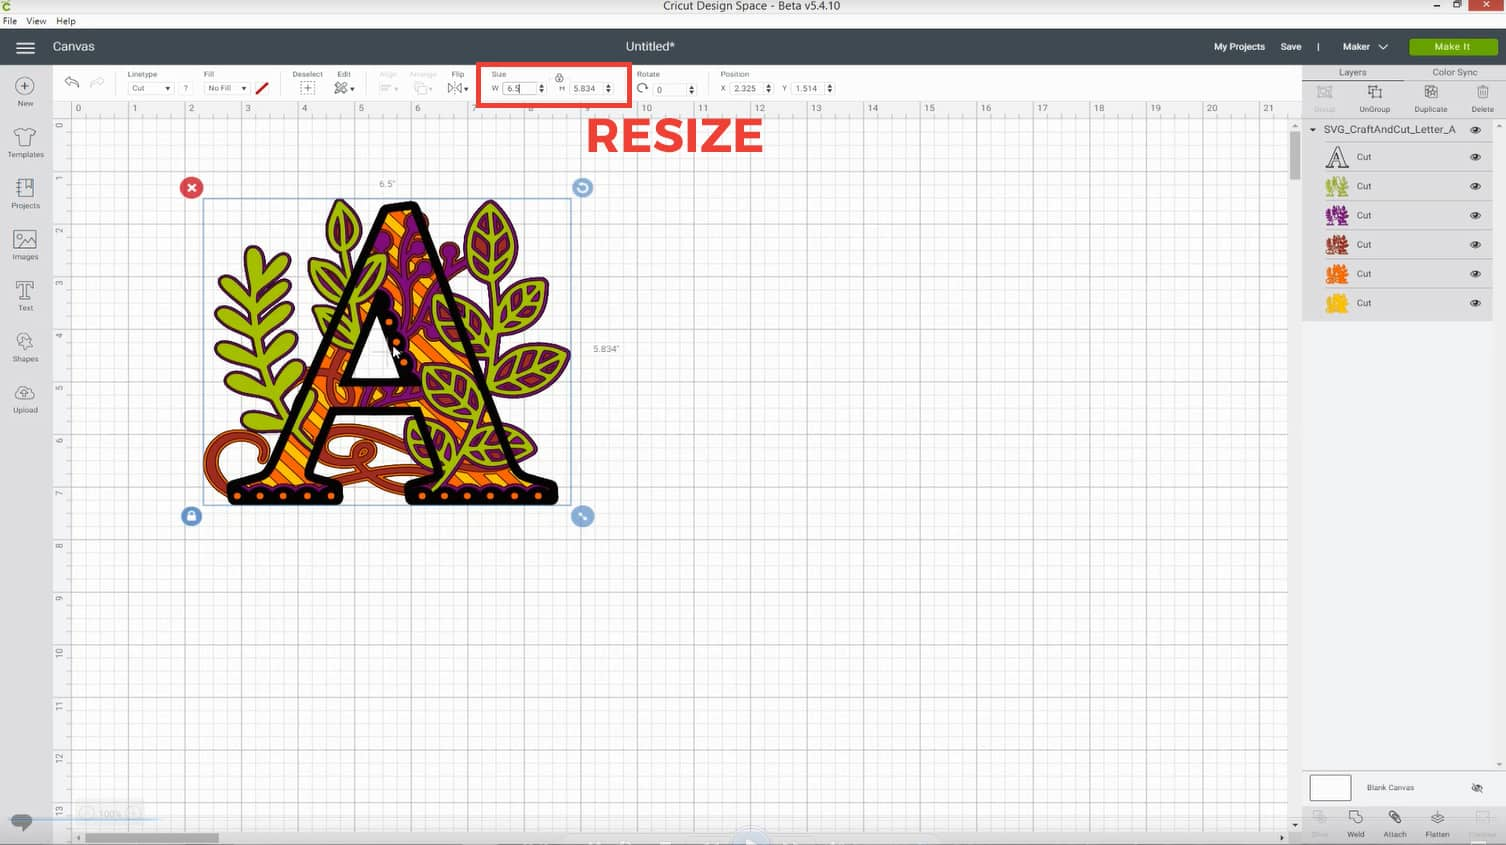 Resize in Cricut Design Space